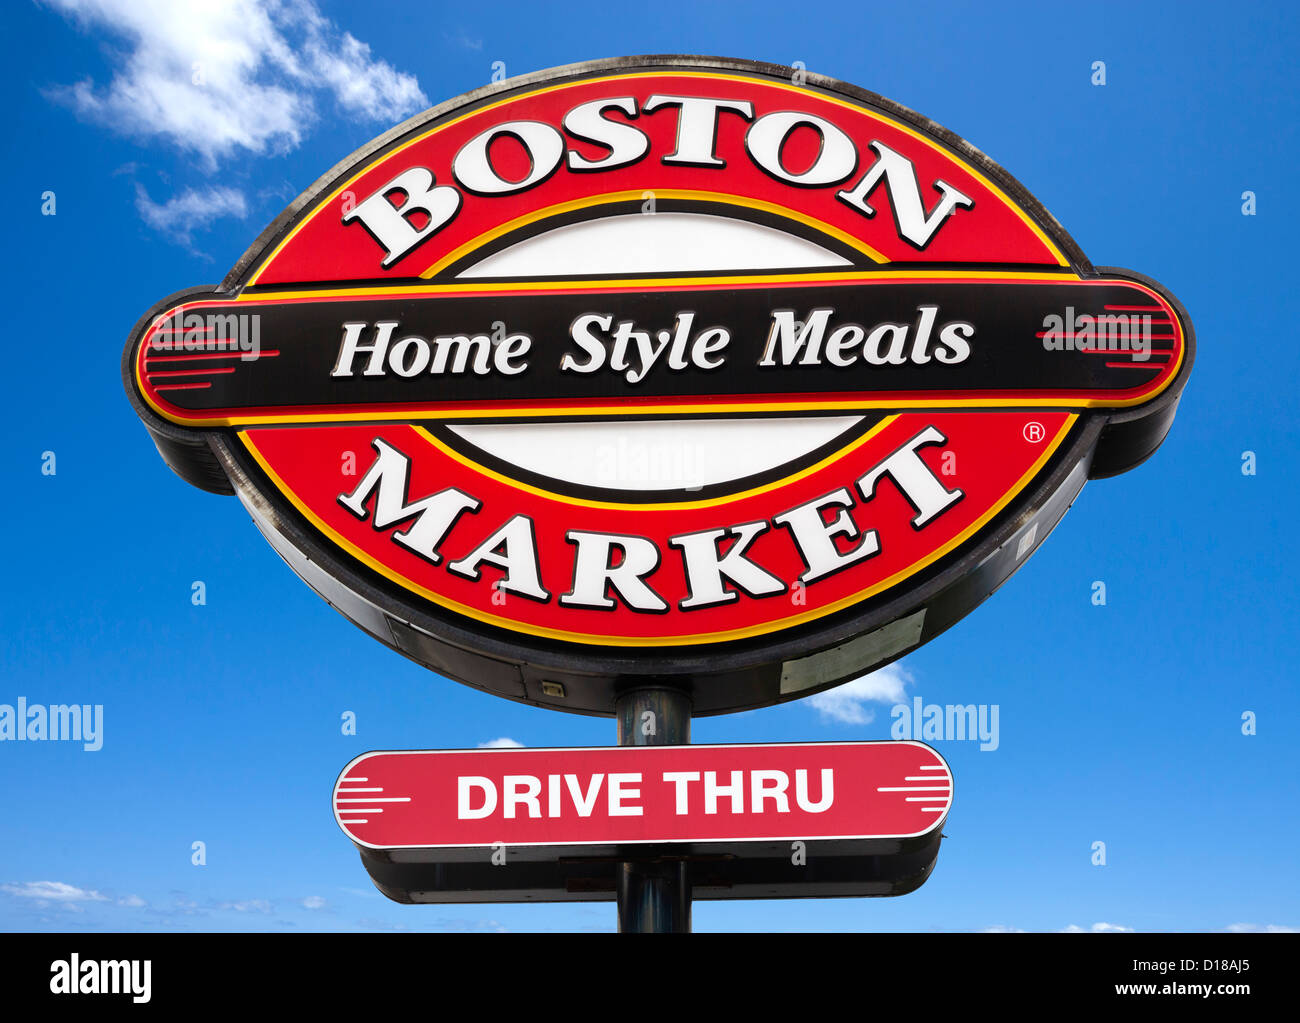 Boston Market Restaurante en Winter Haven, Florida, EE.UU. Imagen De Stock